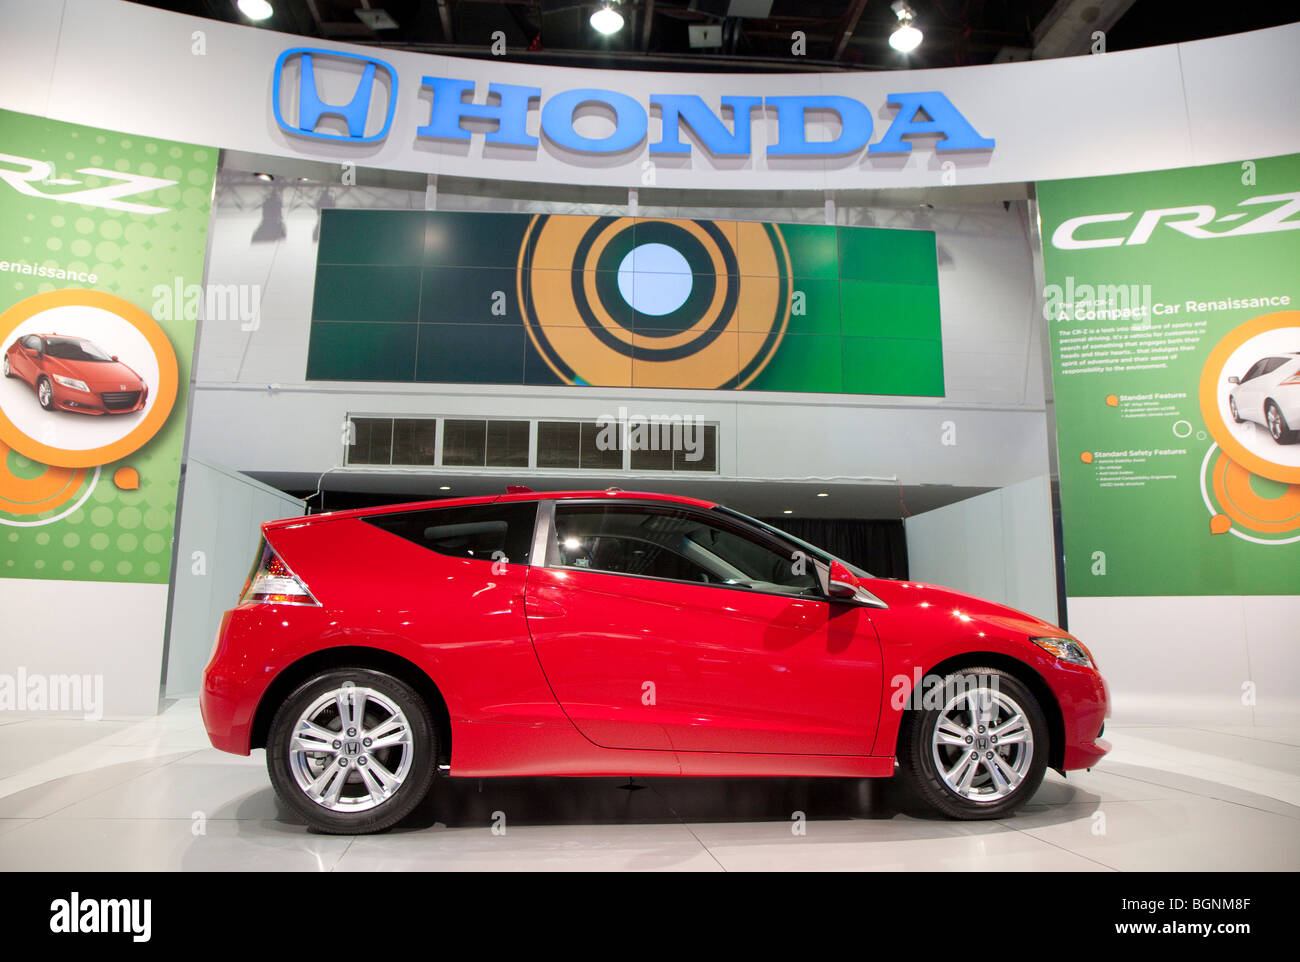 Detroit, Michigan - The Honda CR-Z hybrid sports coupe on display at the 2010 North American International Auto - Stock Image